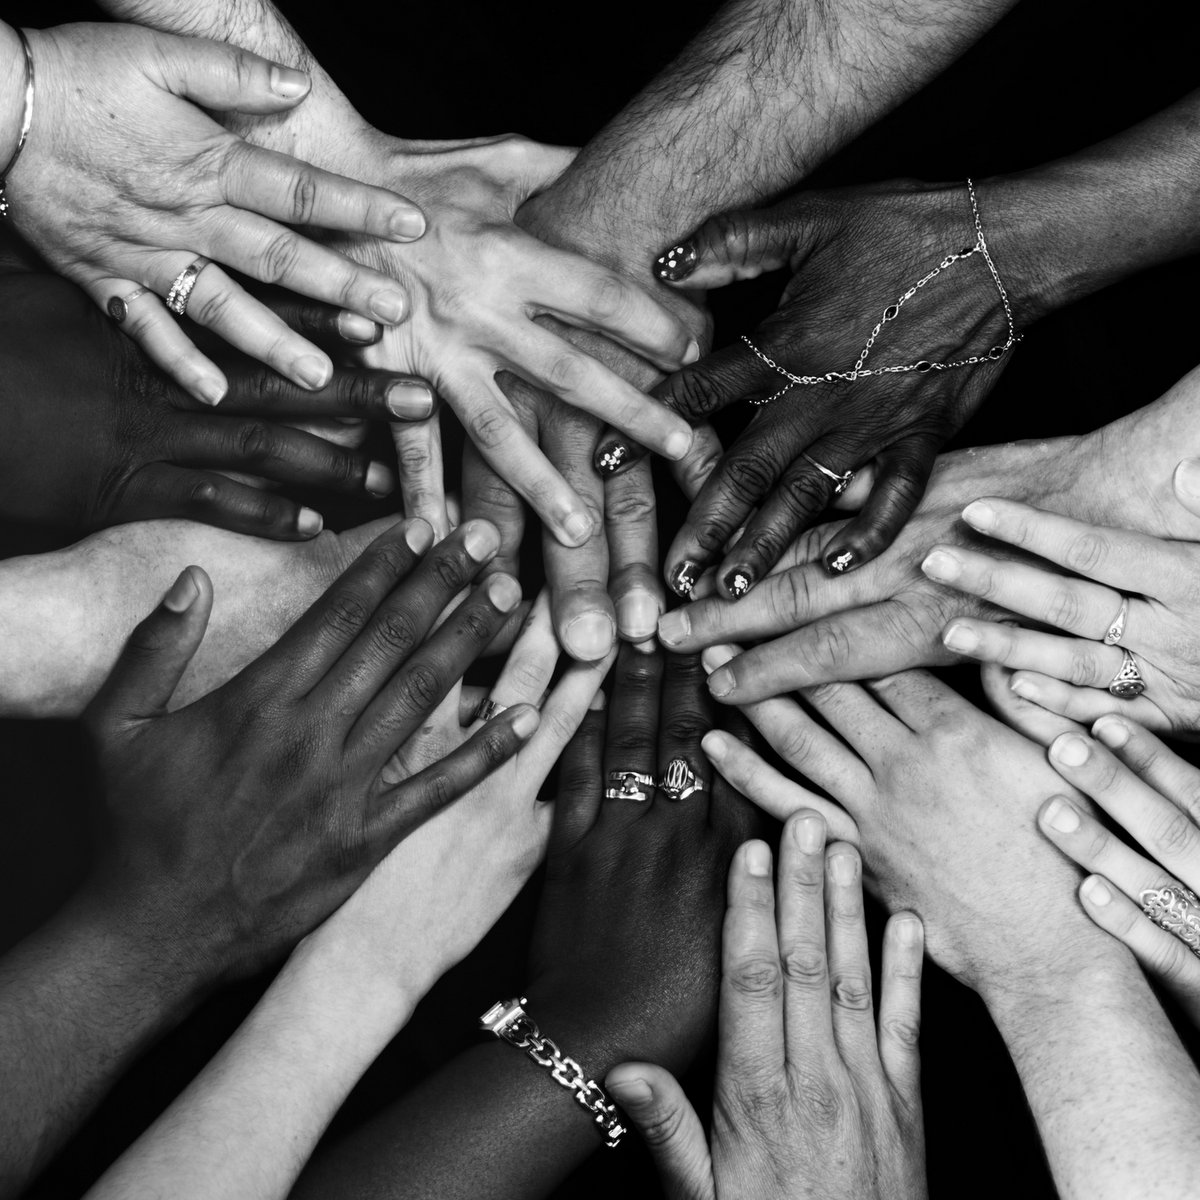 Hands of many different colors and ethnicities laid on top of each other representing unity and connection